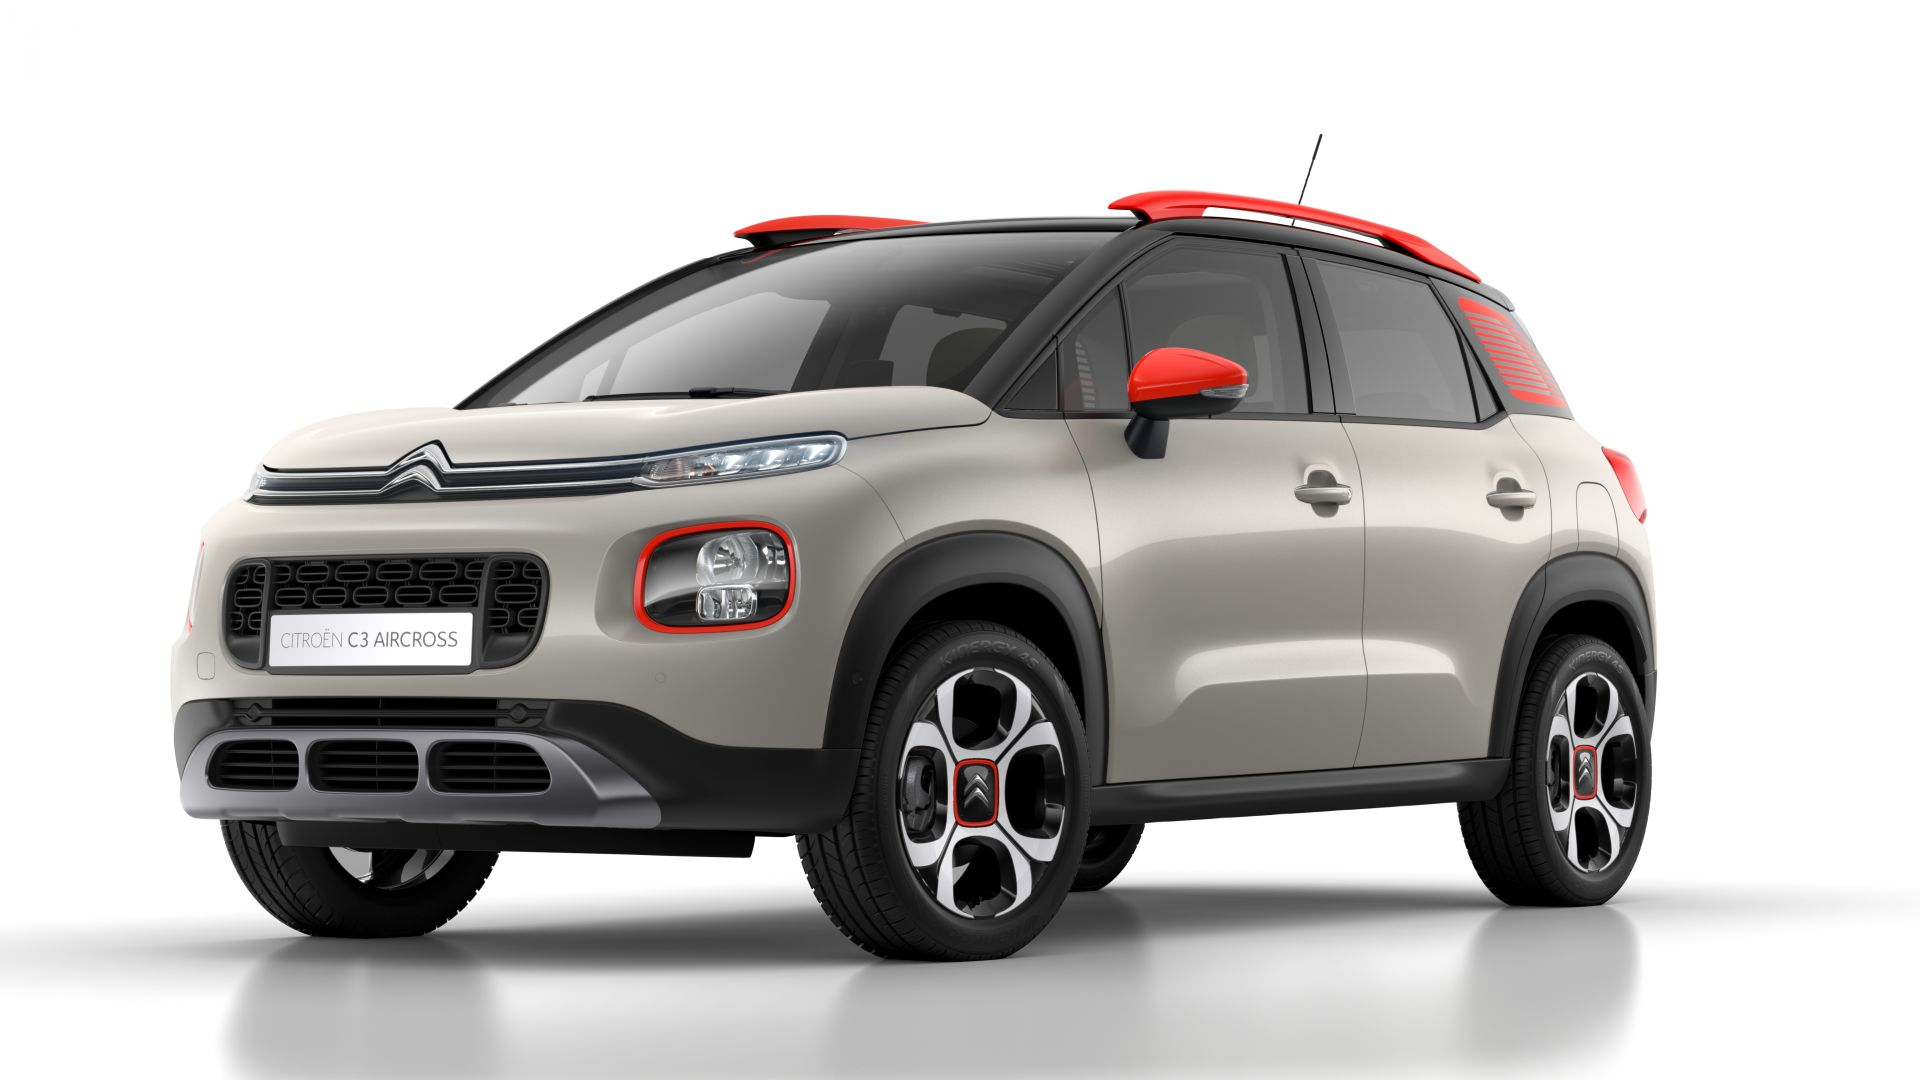 wallpaper citroen c3 aircross 2018 cars 5k cars bikes 16952. Black Bedroom Furniture Sets. Home Design Ideas